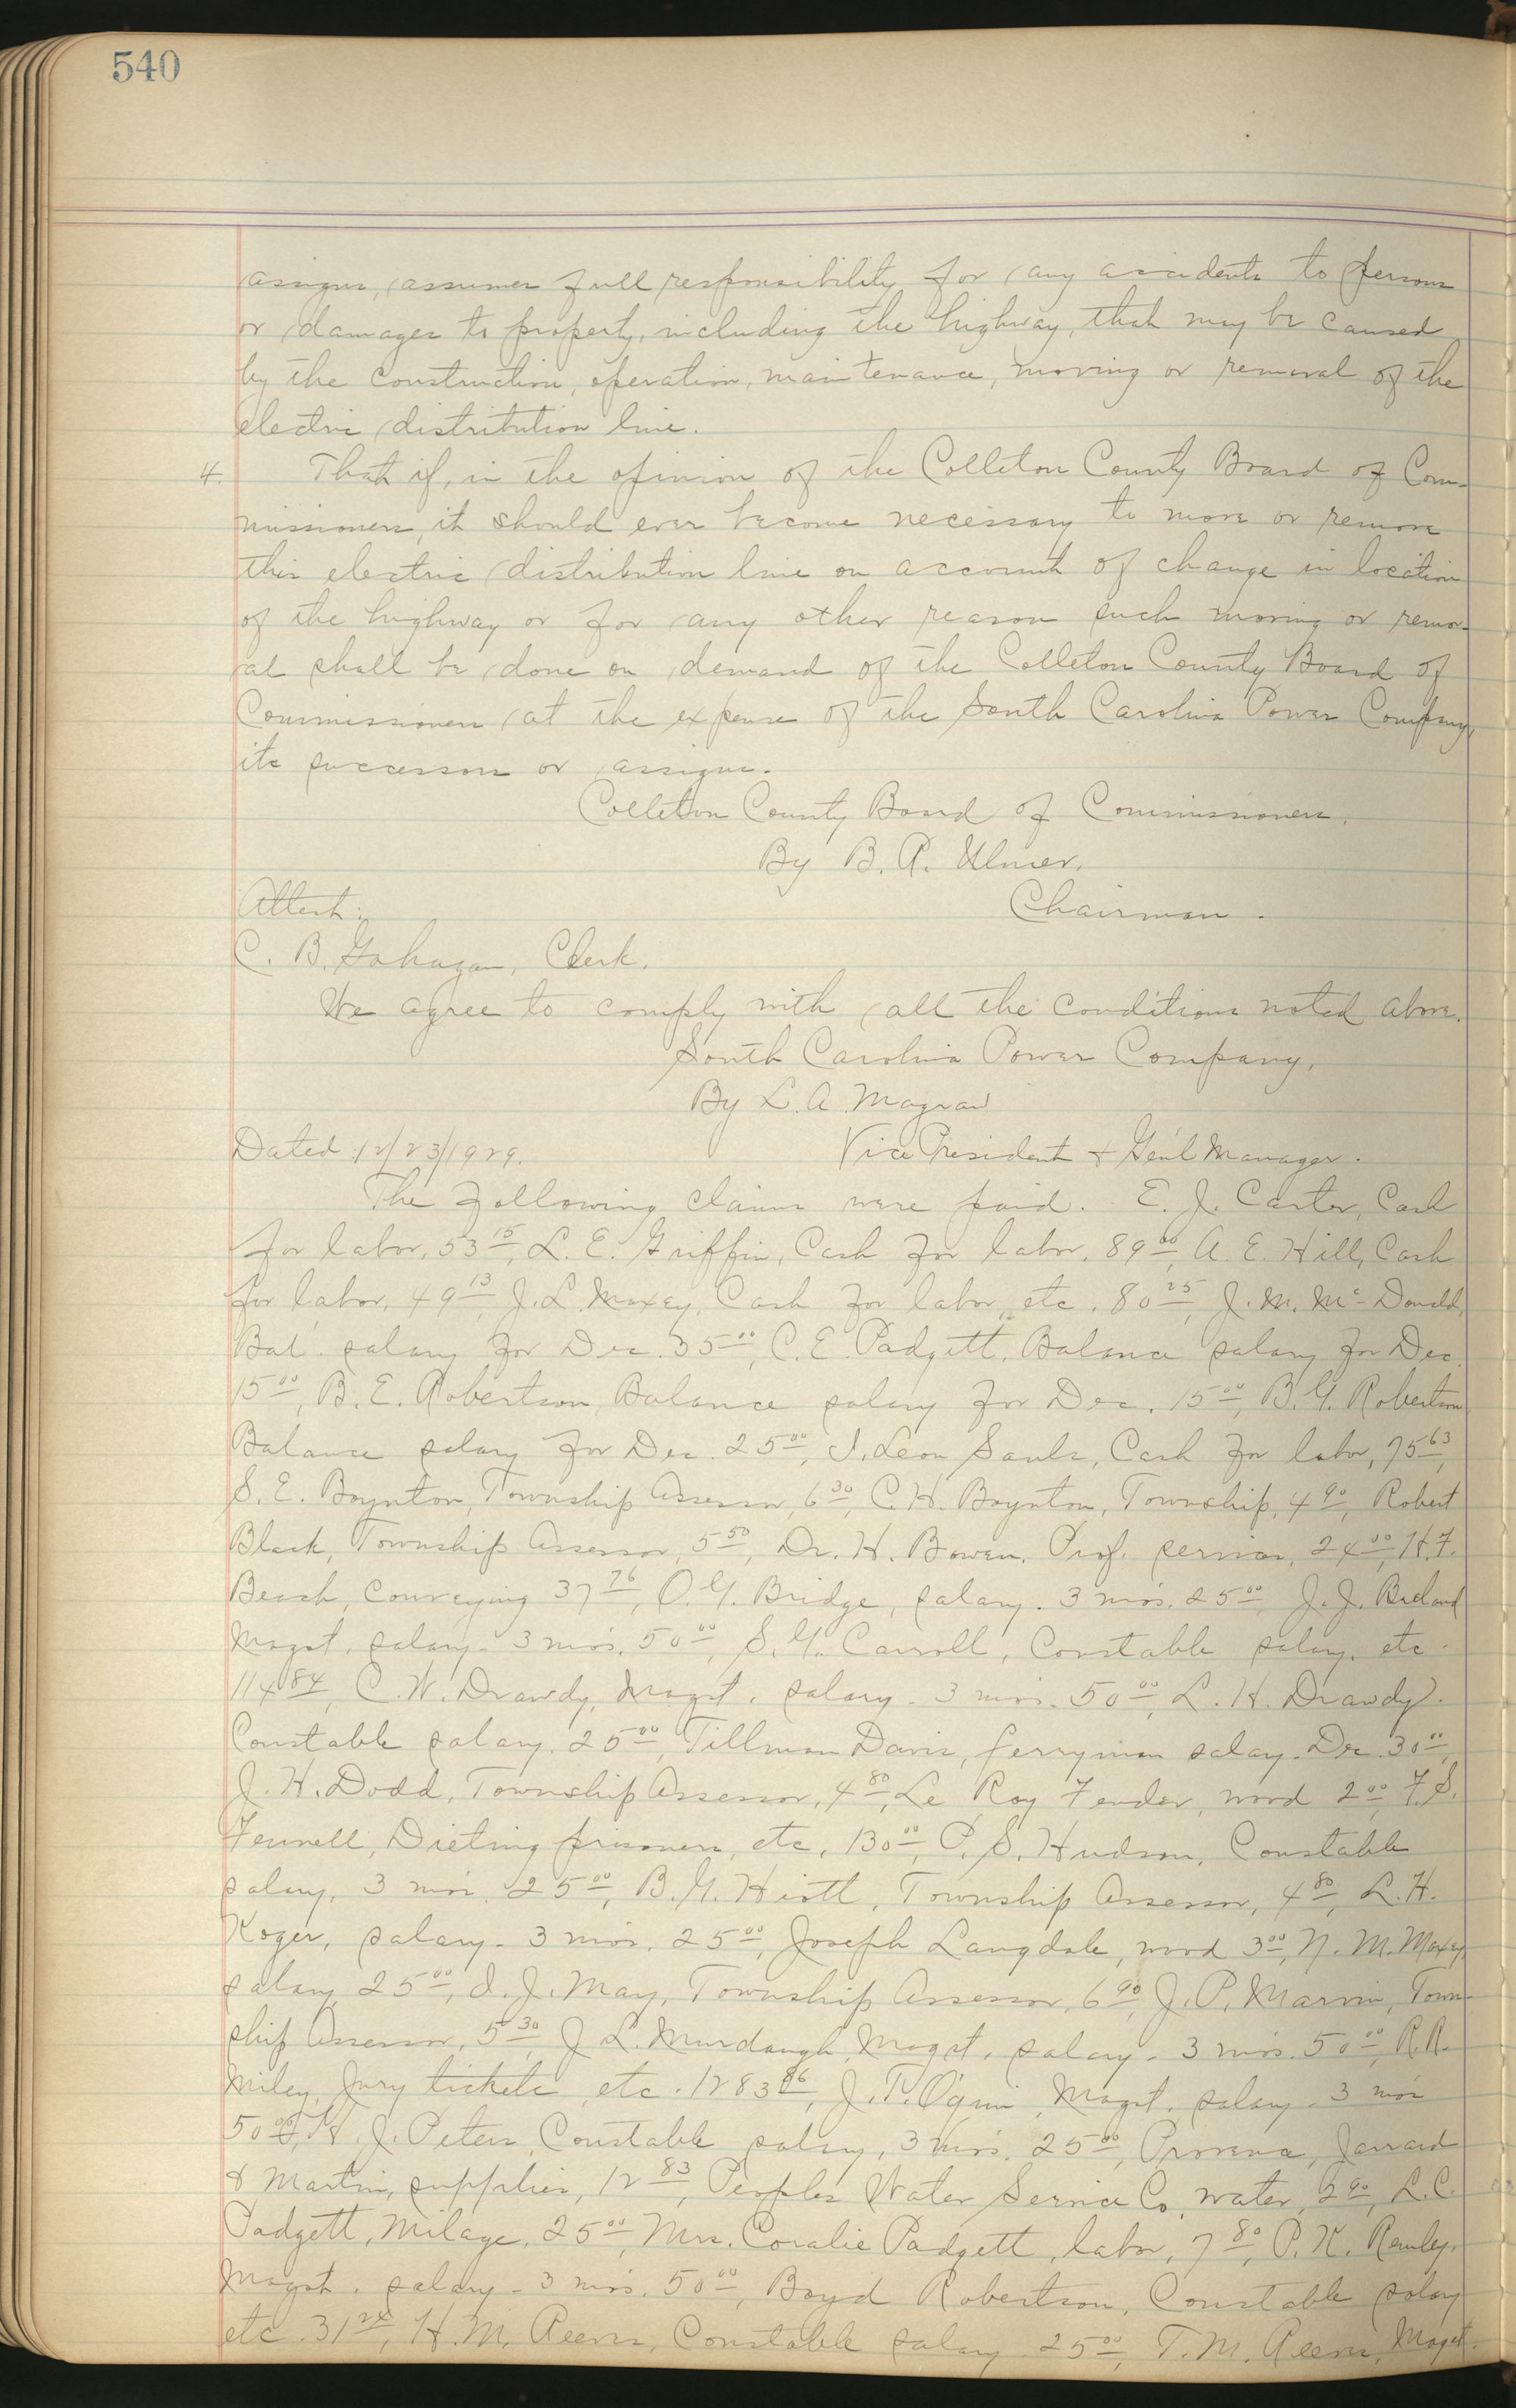 Colleton County Highway Commission Ledger, Page 540